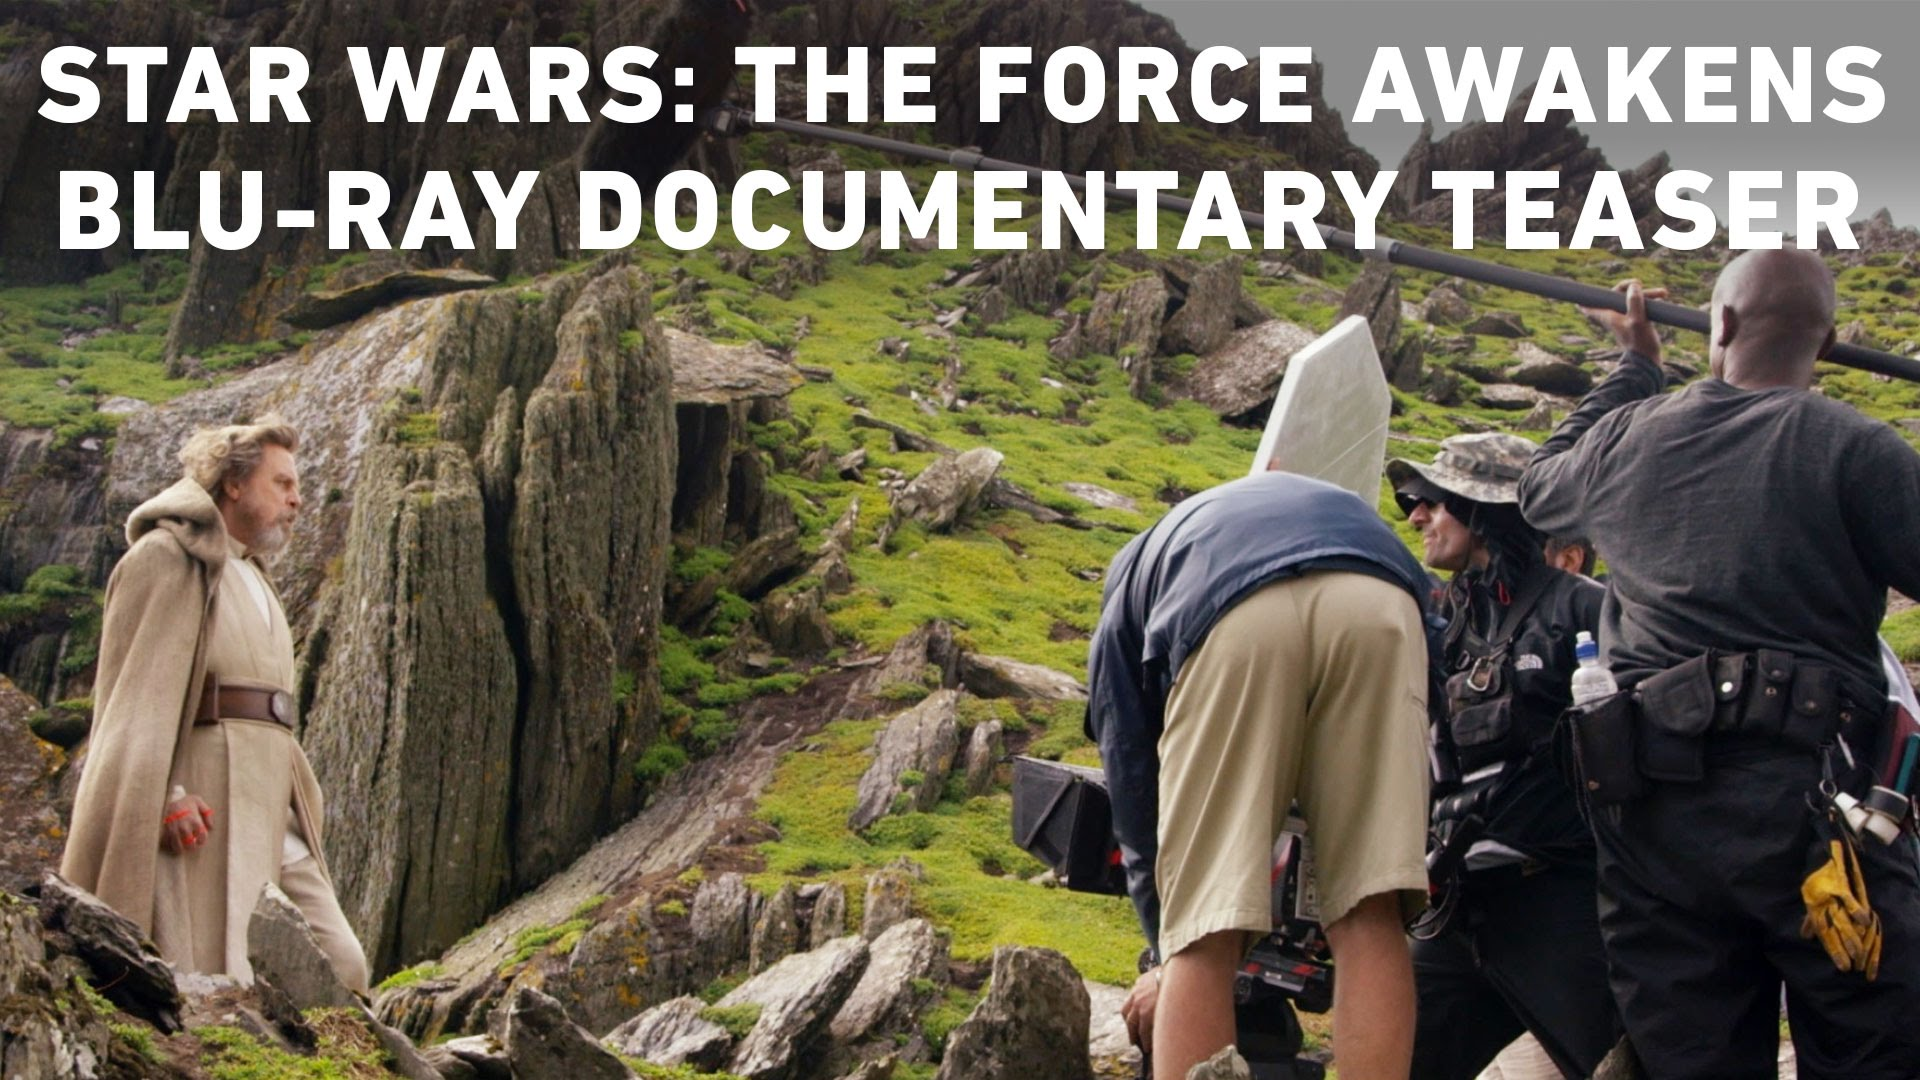 Star Wars: The Force Awakens Blu-ray Documentary Teaser